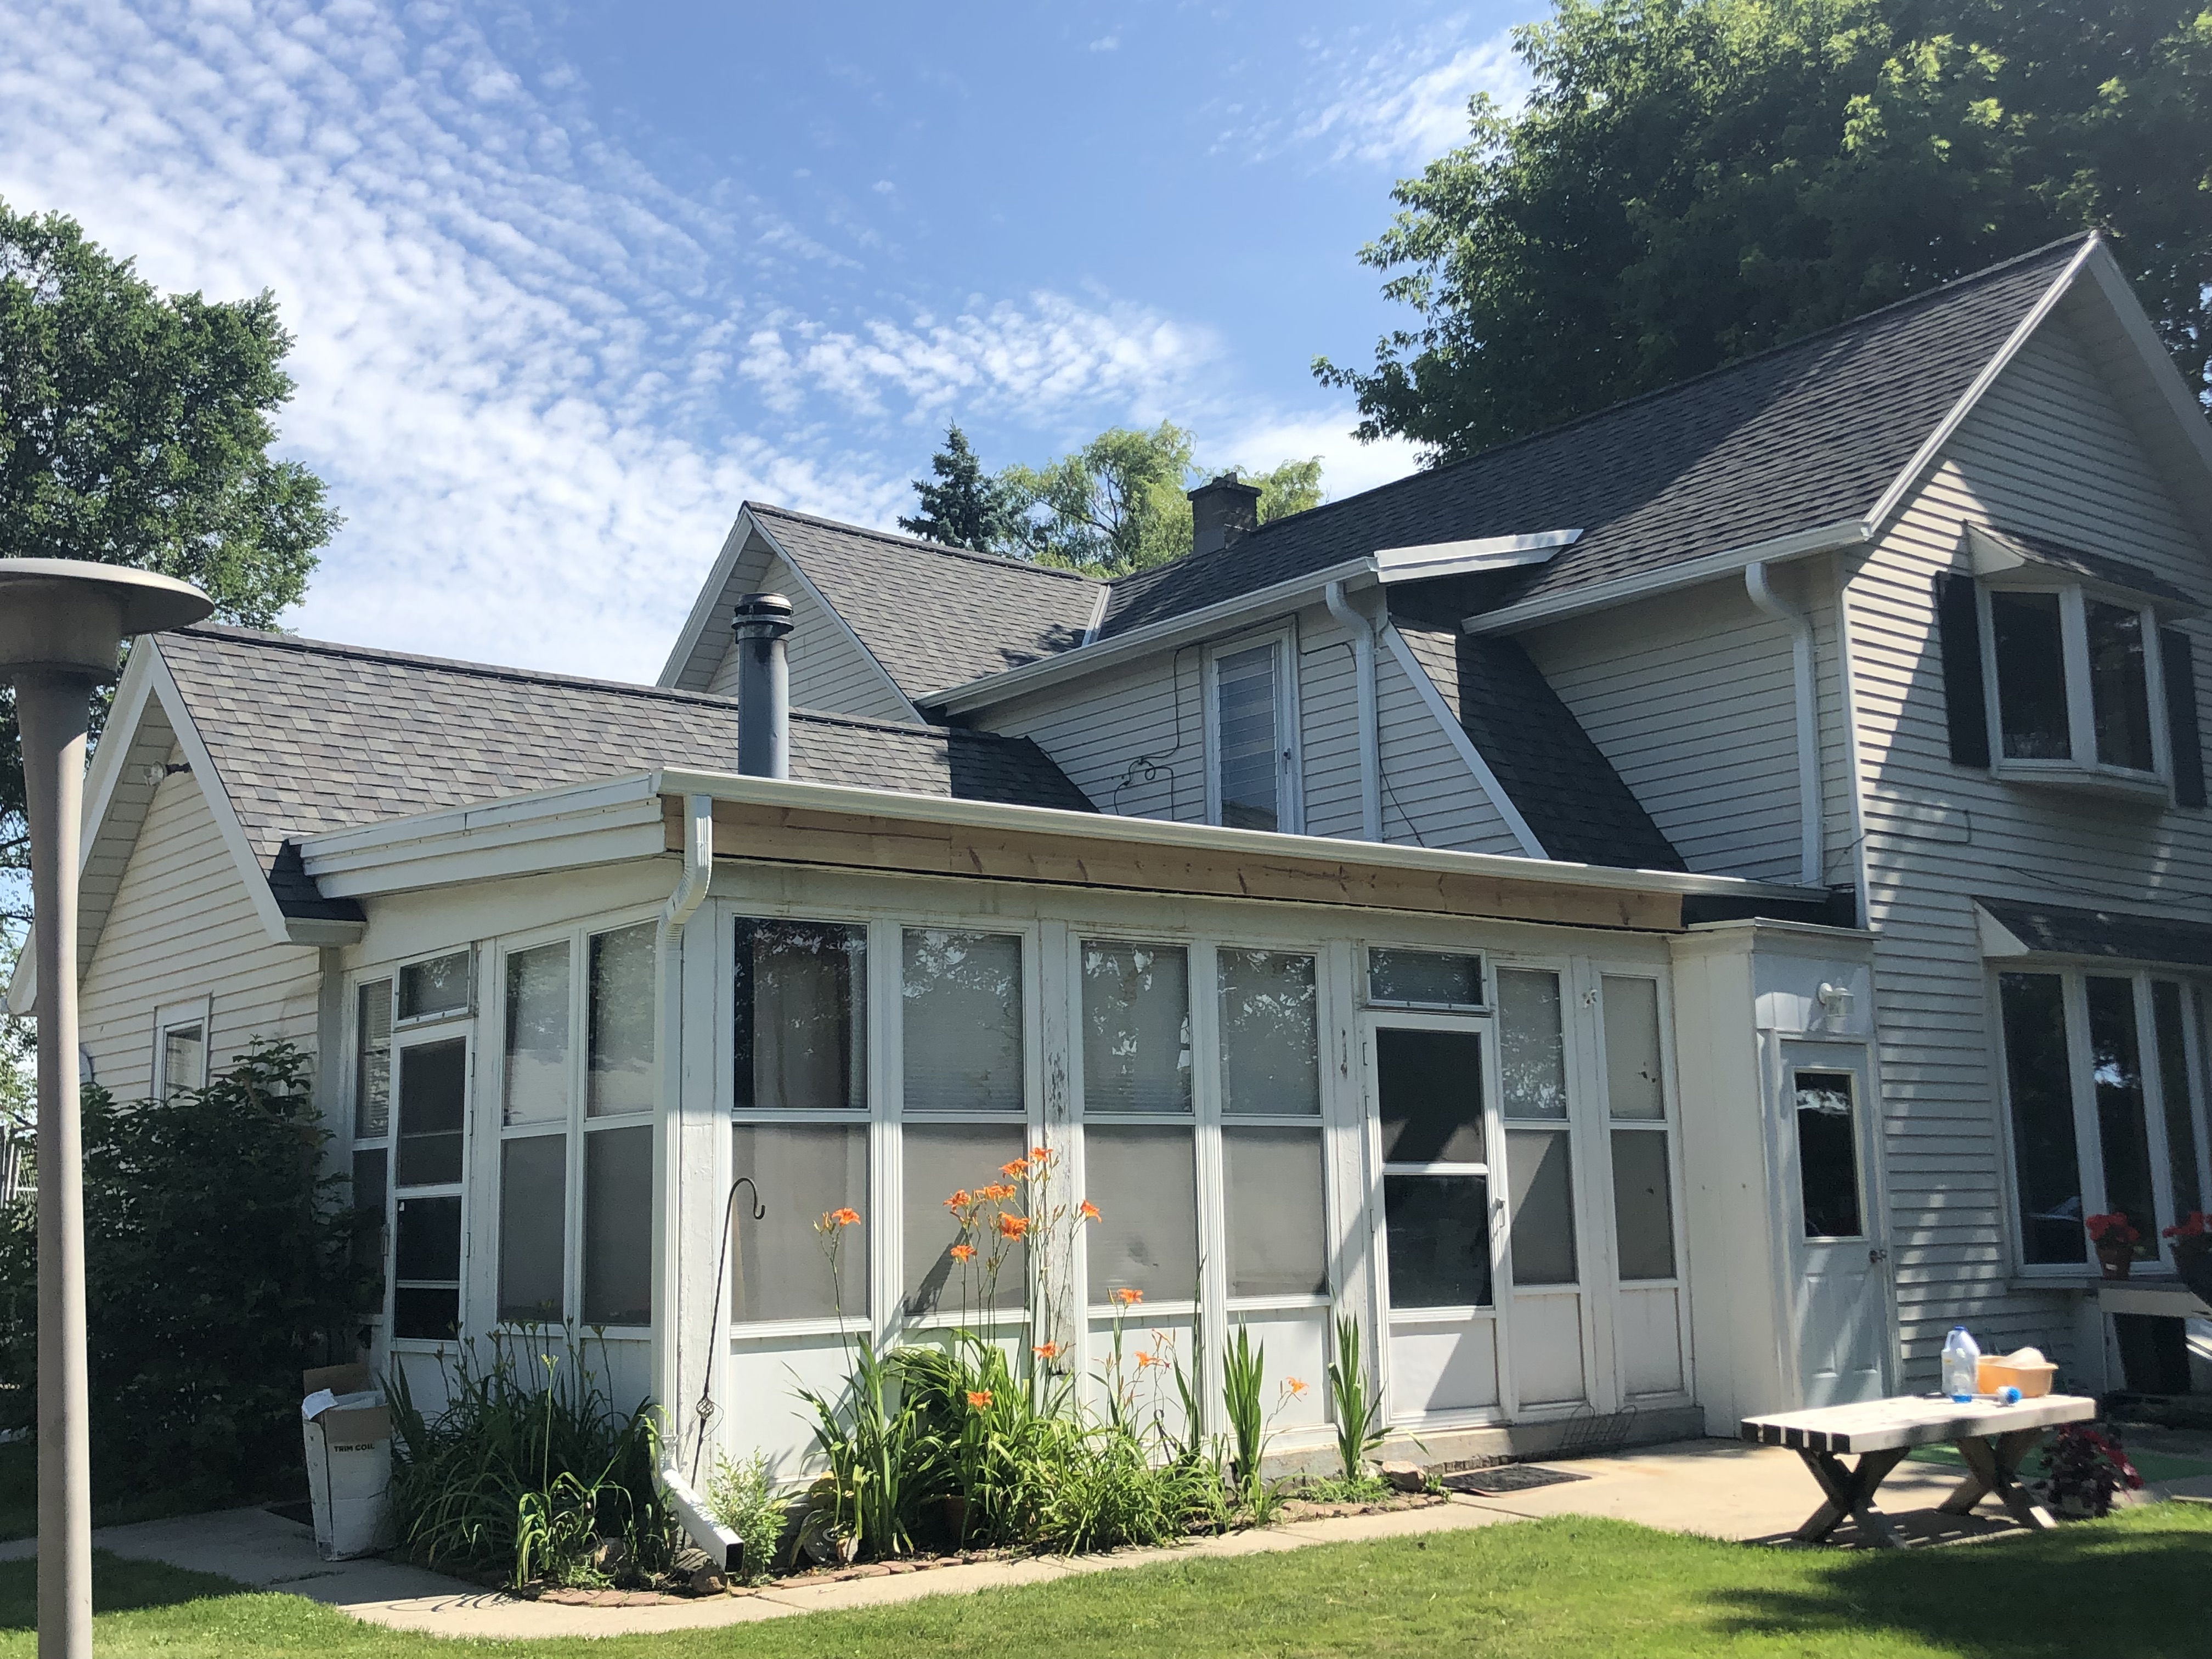 Wisconsin Roofing LLC | Germantown | Residential | New Roof | Added intake and exhaust ventilation difficult farm house | custom transitions | Prior rubber roof done poorly that leaked | Re-framed perimeter